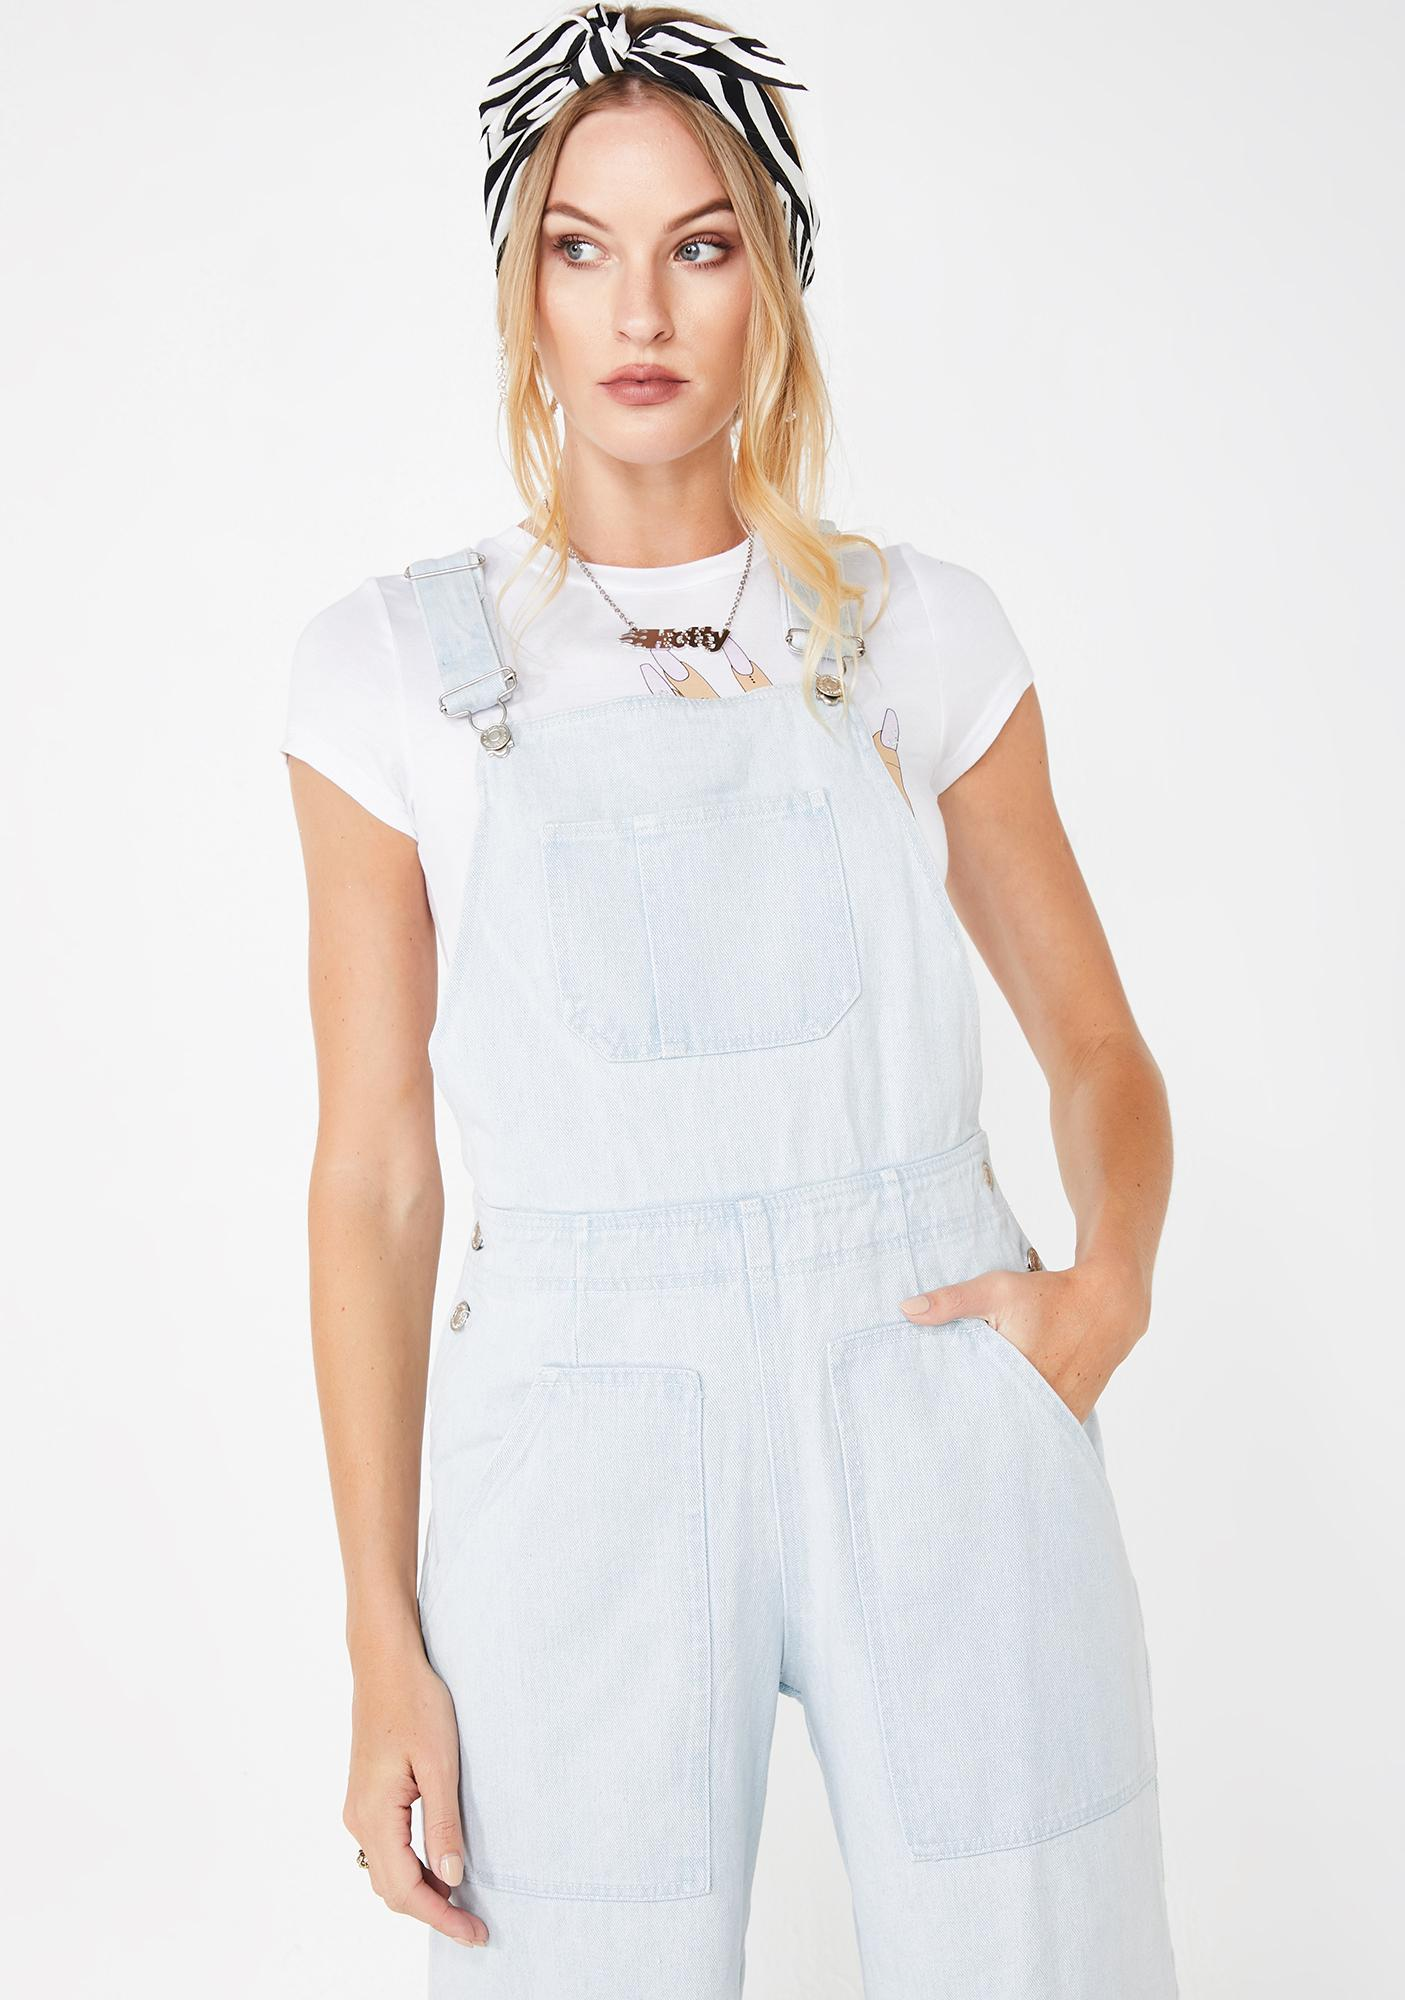 Sky Just Want You Denim Overalls by Dolls Kill